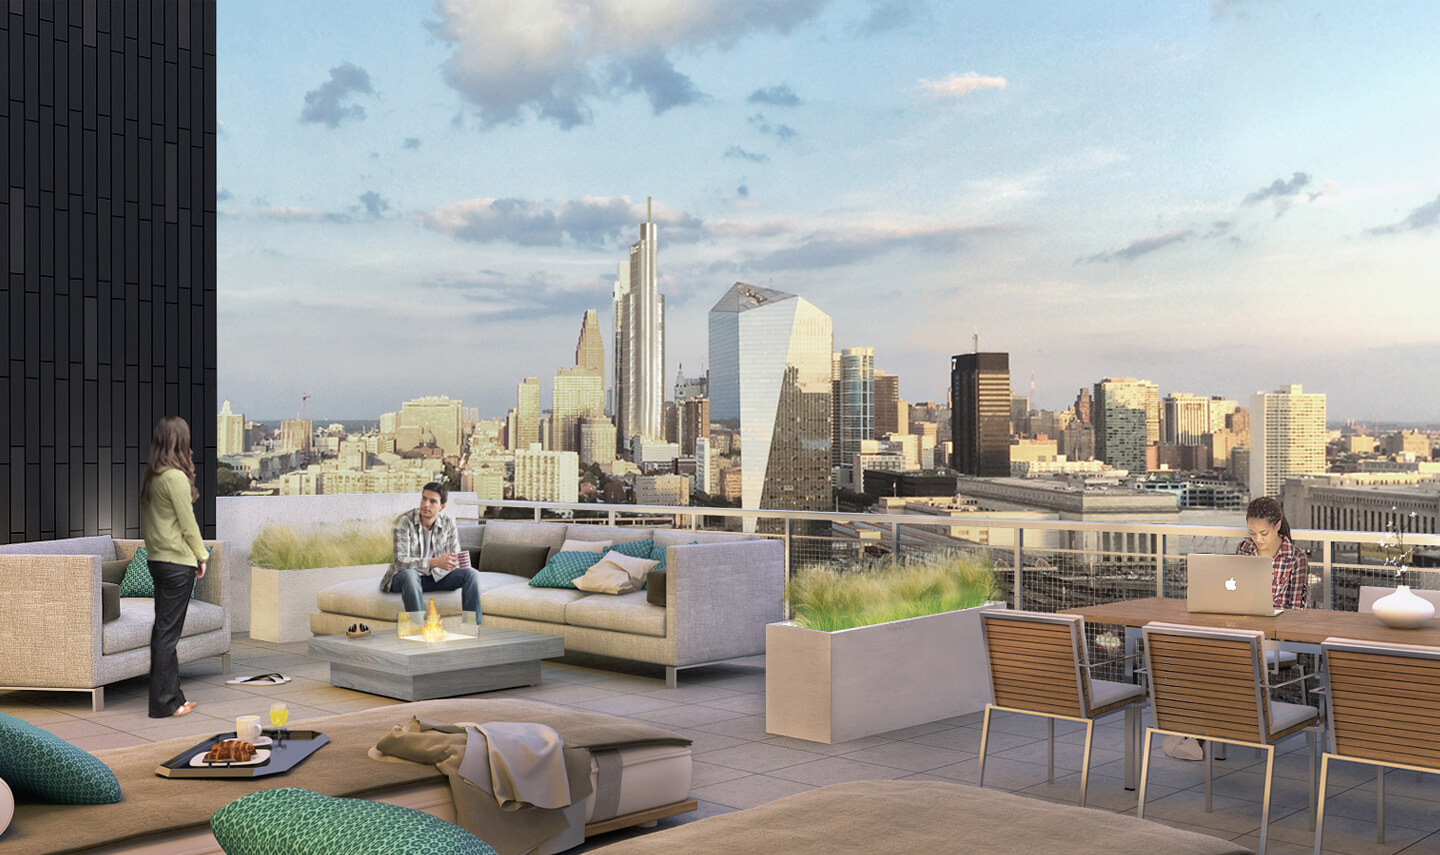 Vue32 features a rooftop terrace where you can enjoy unobstructed skyline views of Philadelphia